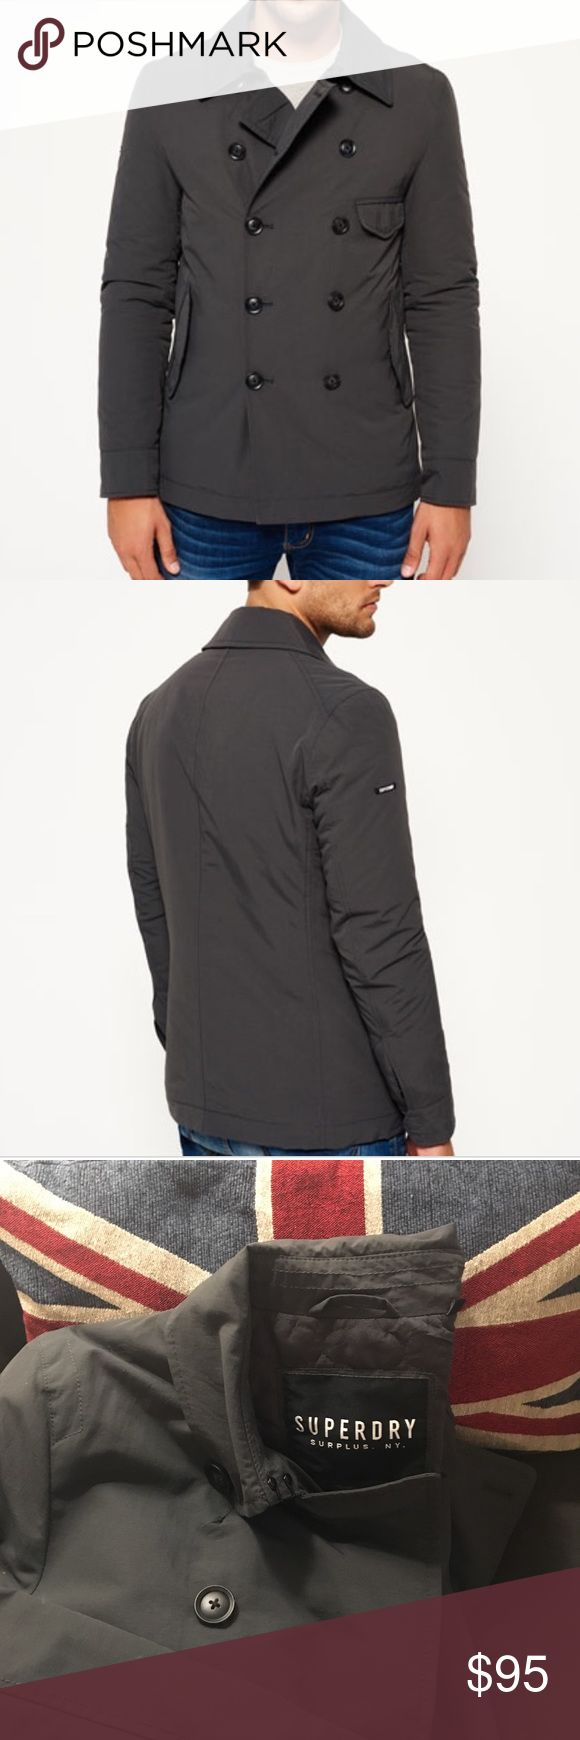 NWOT Superdry Blockade Aviator Coat Fitted padded pea coat. Nylon exterior, the perfect mix of form and function for transitional weather. Dark grey in color. New, never worn condition. No trades, please ask if any questions. Reasonable offers always welcome. Superdry Jackets & Coats Pea Coats